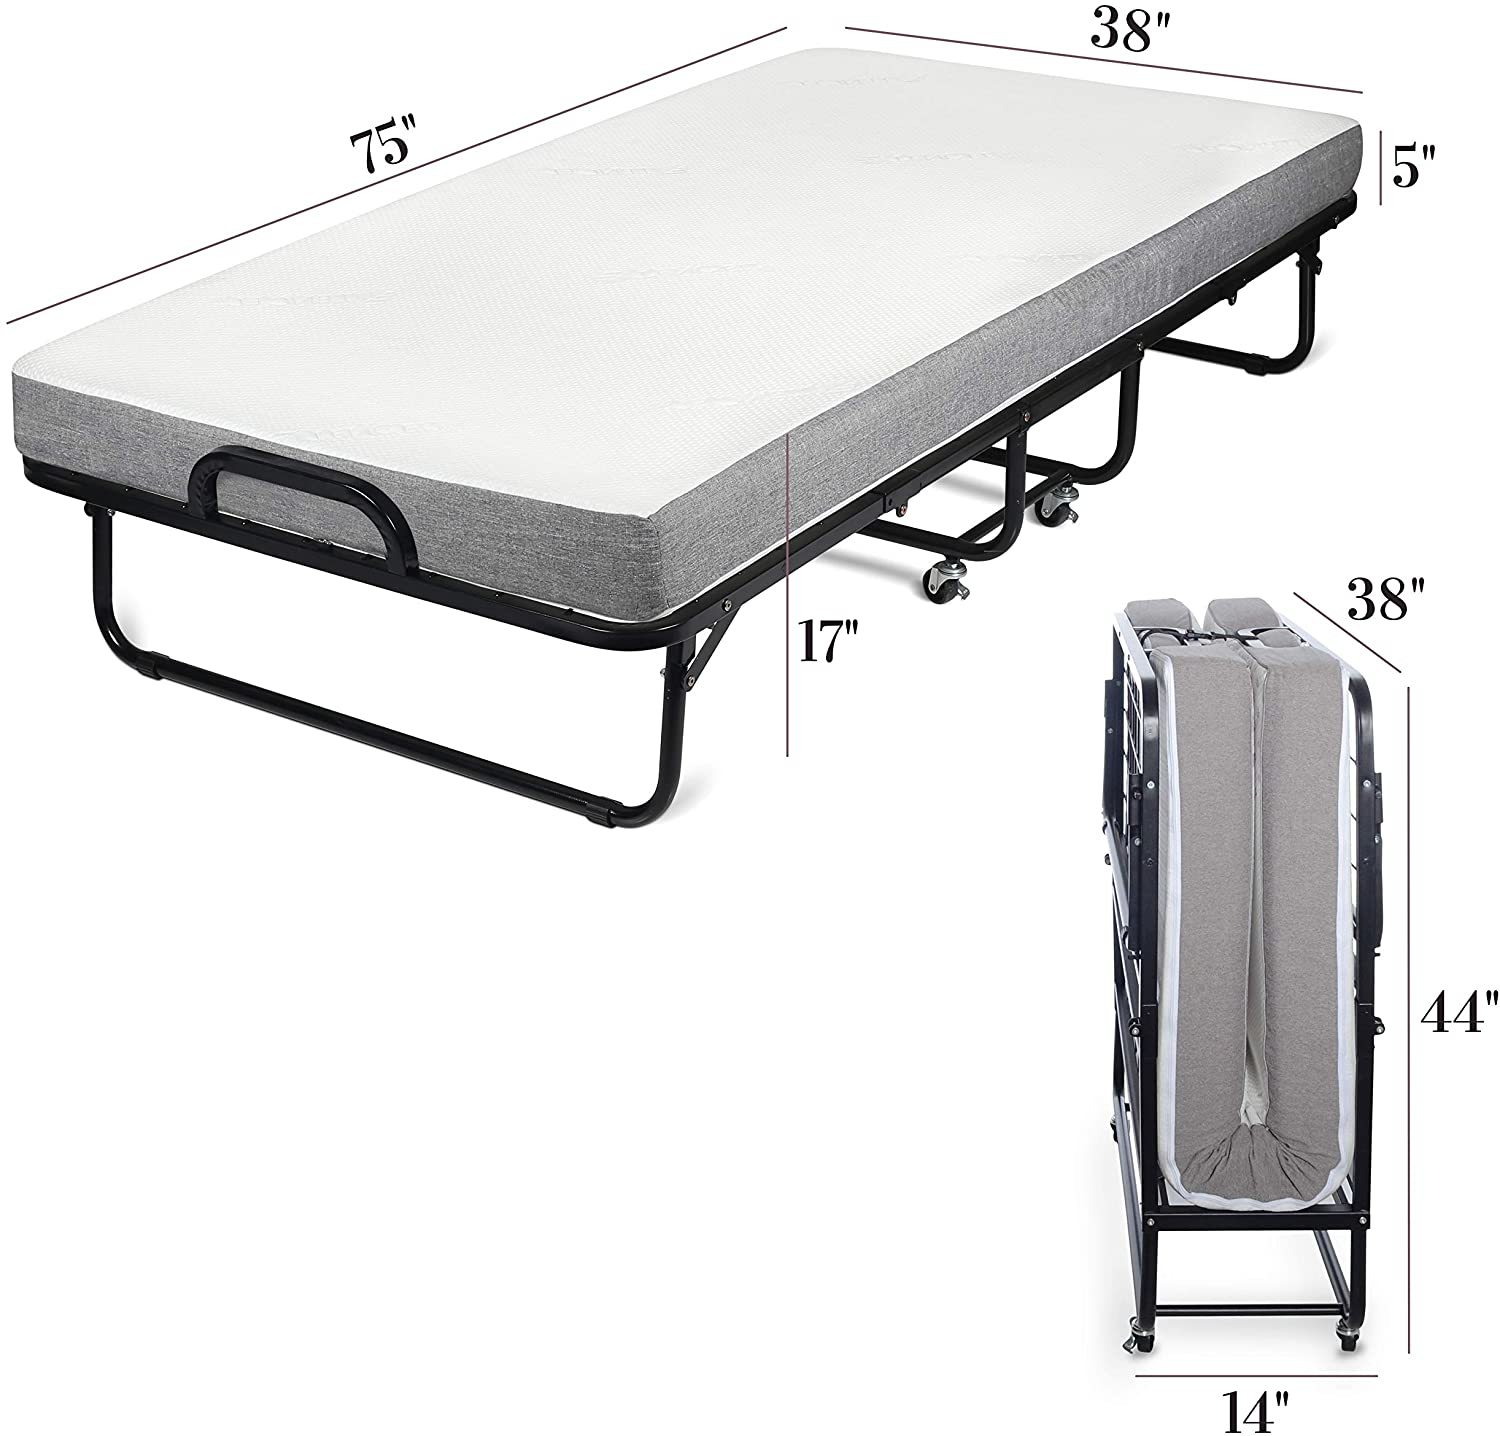 Milliard Diplomat Folding Bed - Size and Dimensions